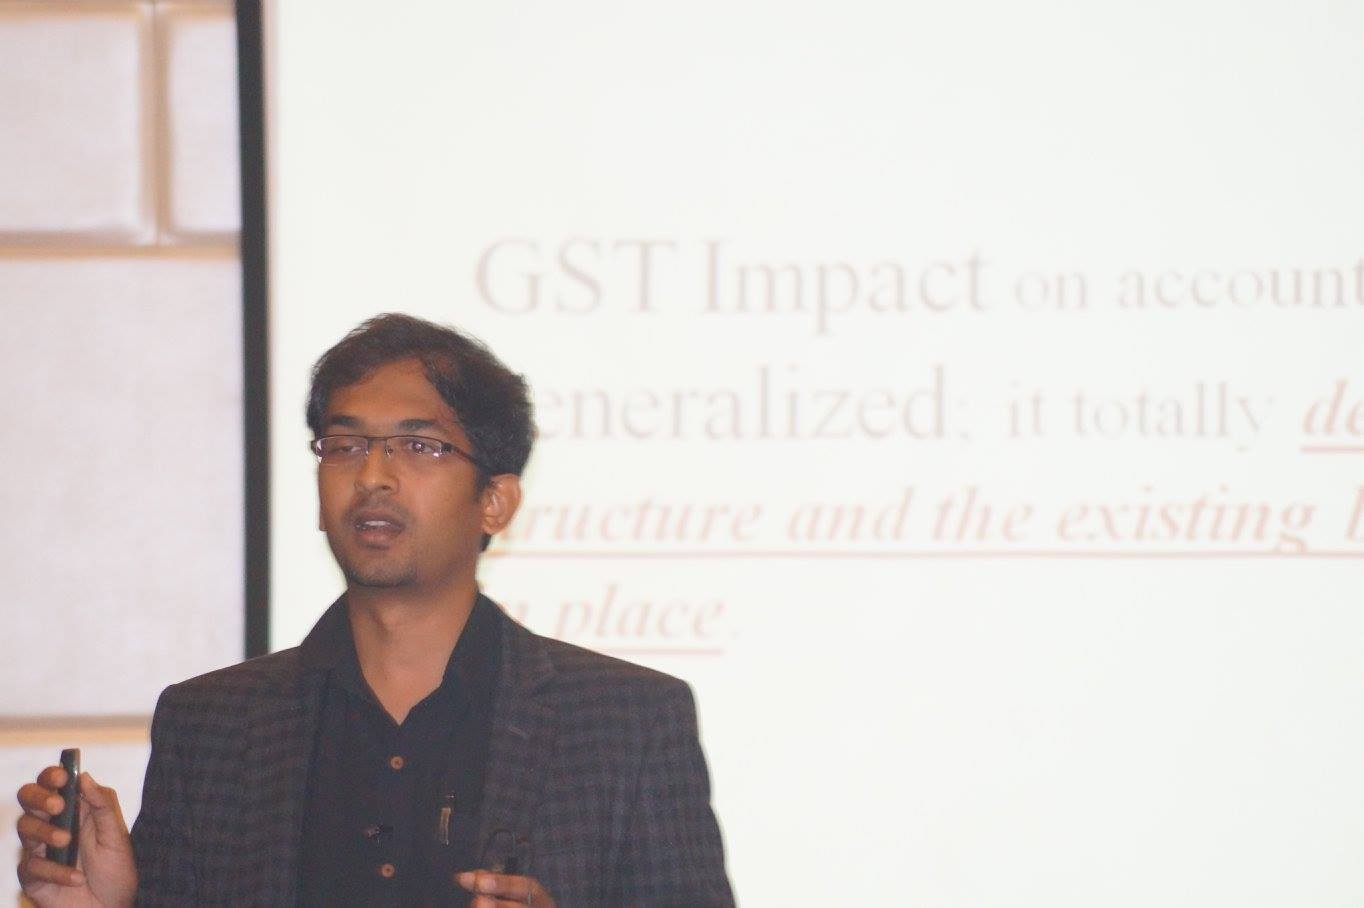 GST Materclass Workshop at Bangalore